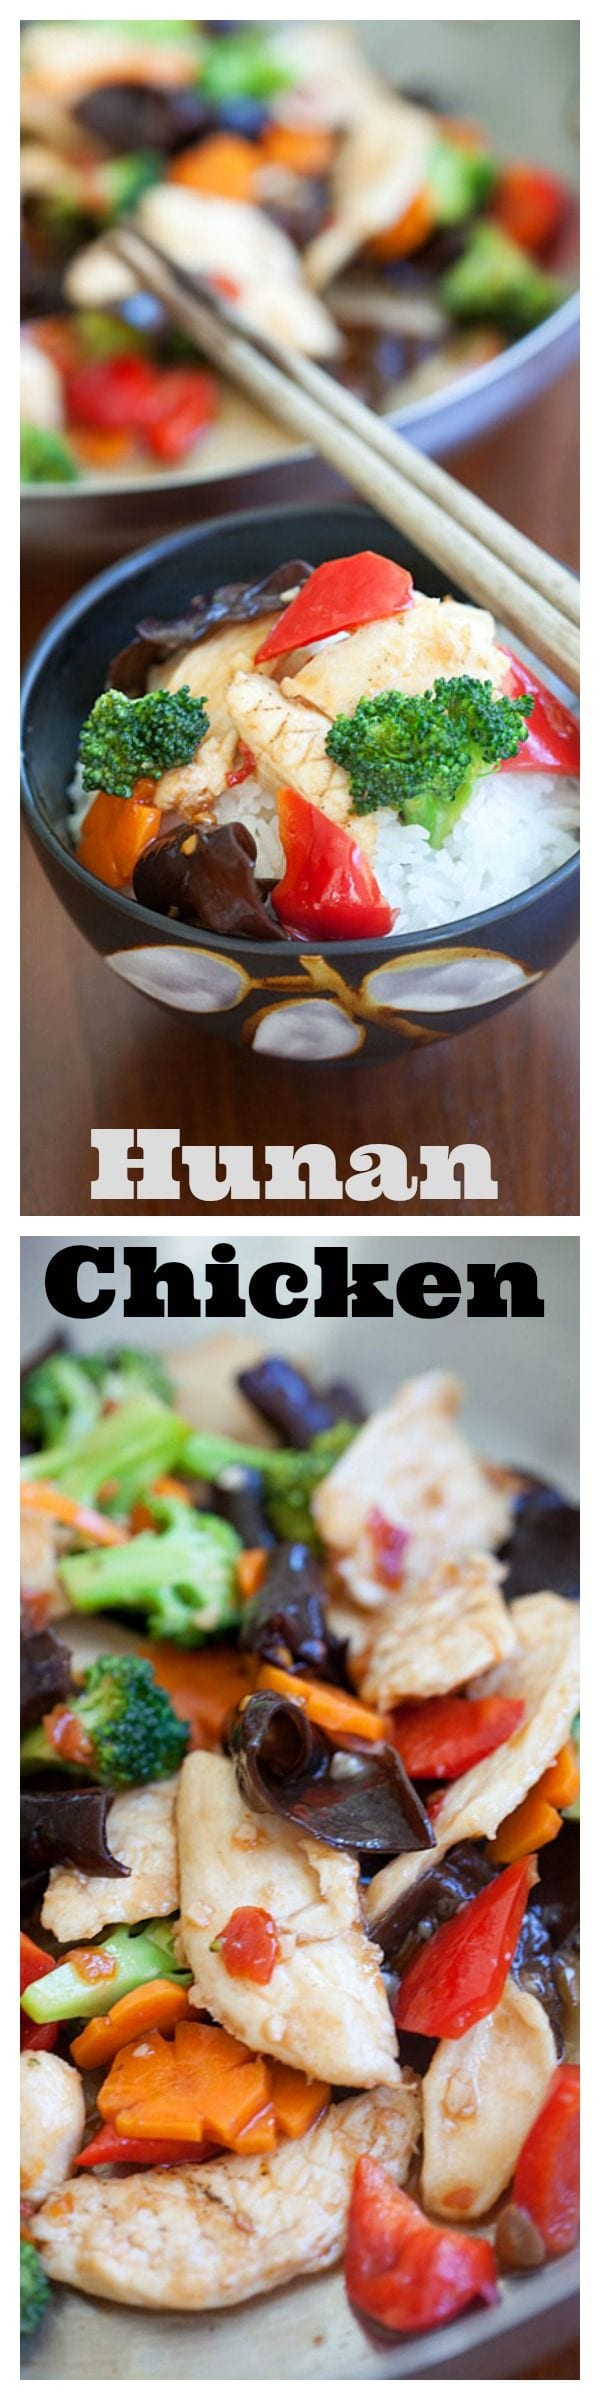 Hunan chicken is a tasty Chinese chicken dish with broccoli, peppers in a spicy Hunan sauce. Easy Hunan Chicken recipe that is better than takeout | rasamalaysia.com